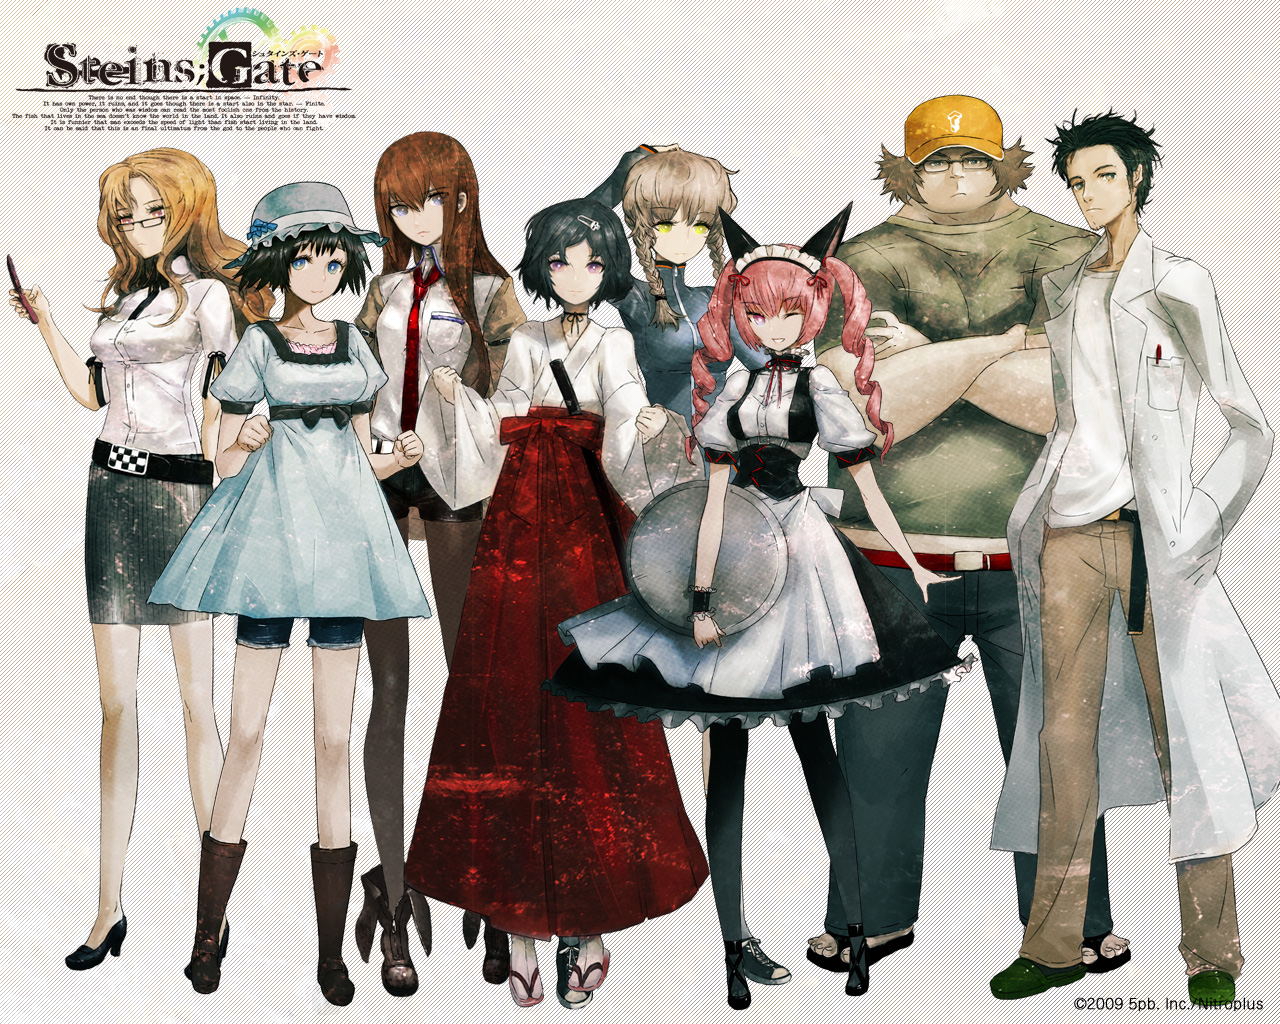 http://images.wikia.com/steins-gate/images/8/86/Steinsgate.jpg